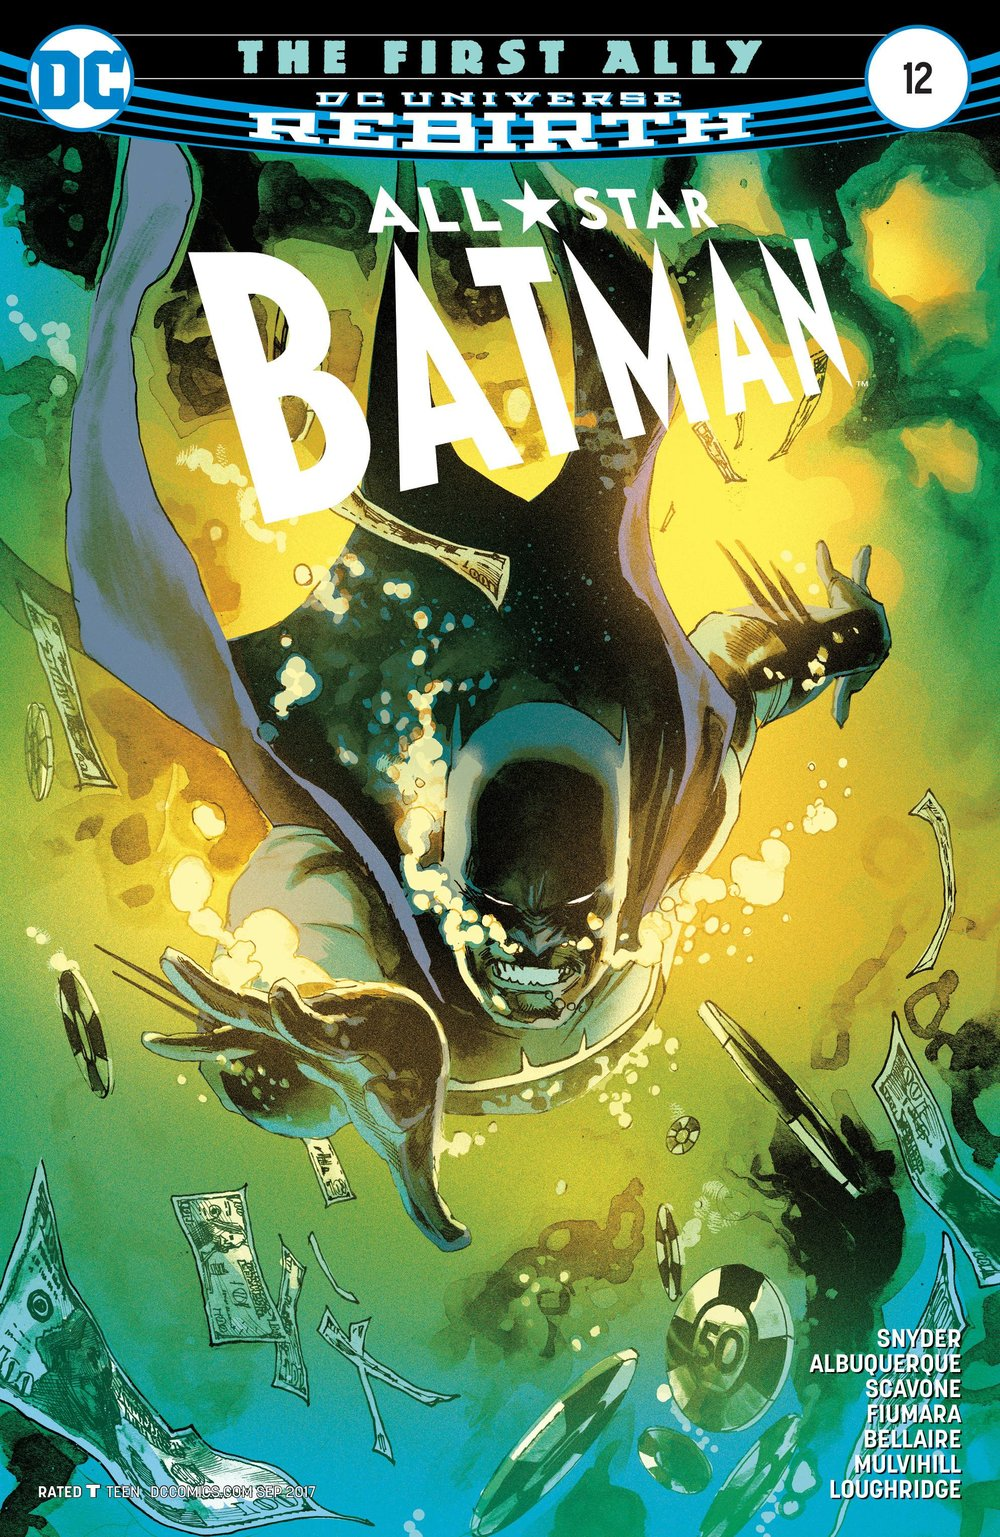 ALL STAR BATMAN #12 - DC COMICSWritten by Scott SnyderArt by Rafael Albuquerque, Sebastian Fiumara